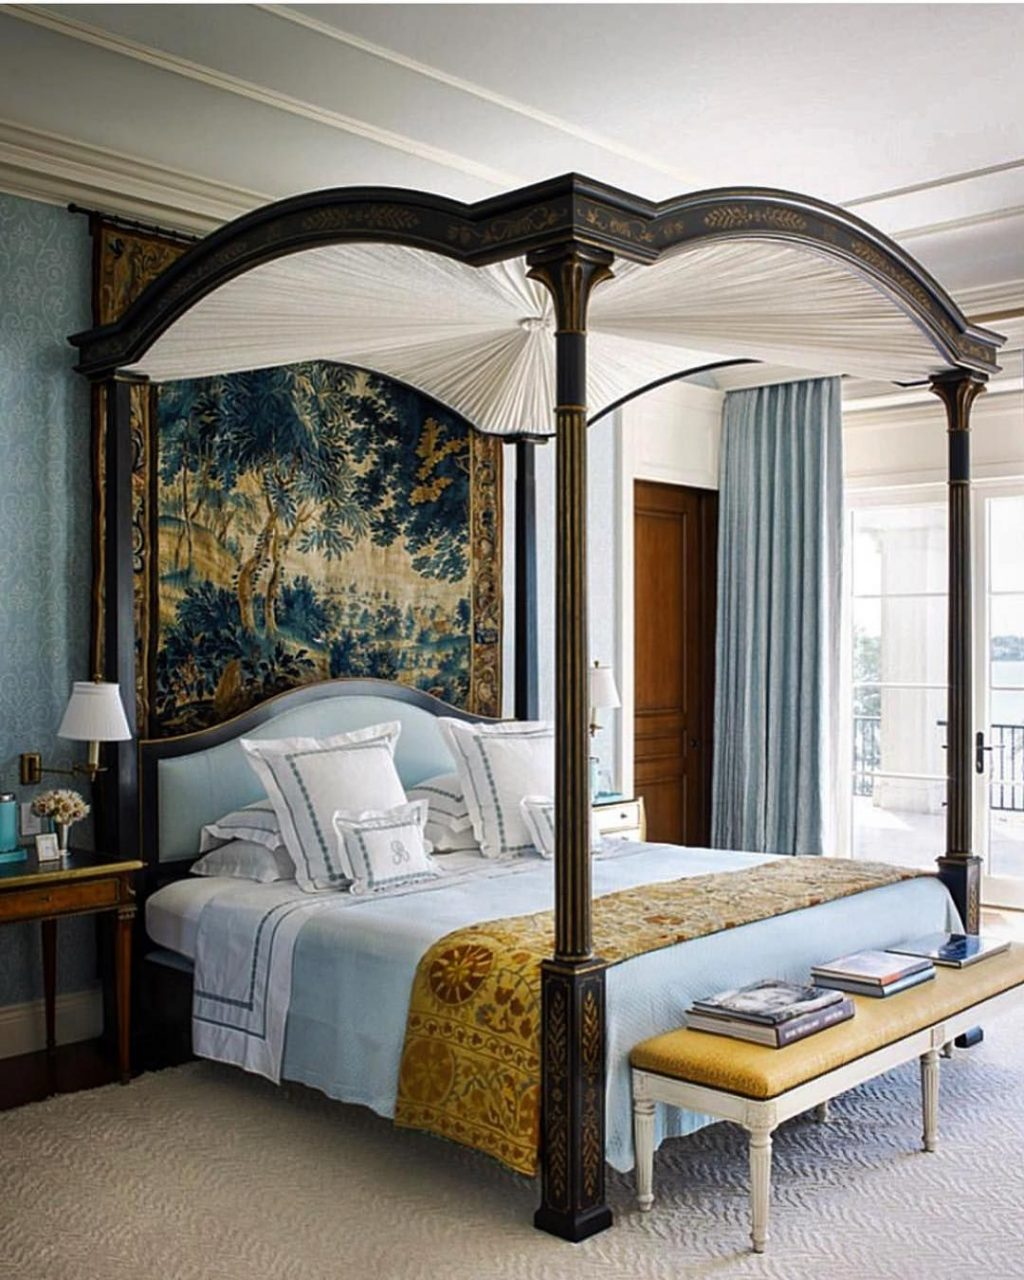 Glorious Master Bedroom With Dark Wooden Canopy Bed The Pale Blue